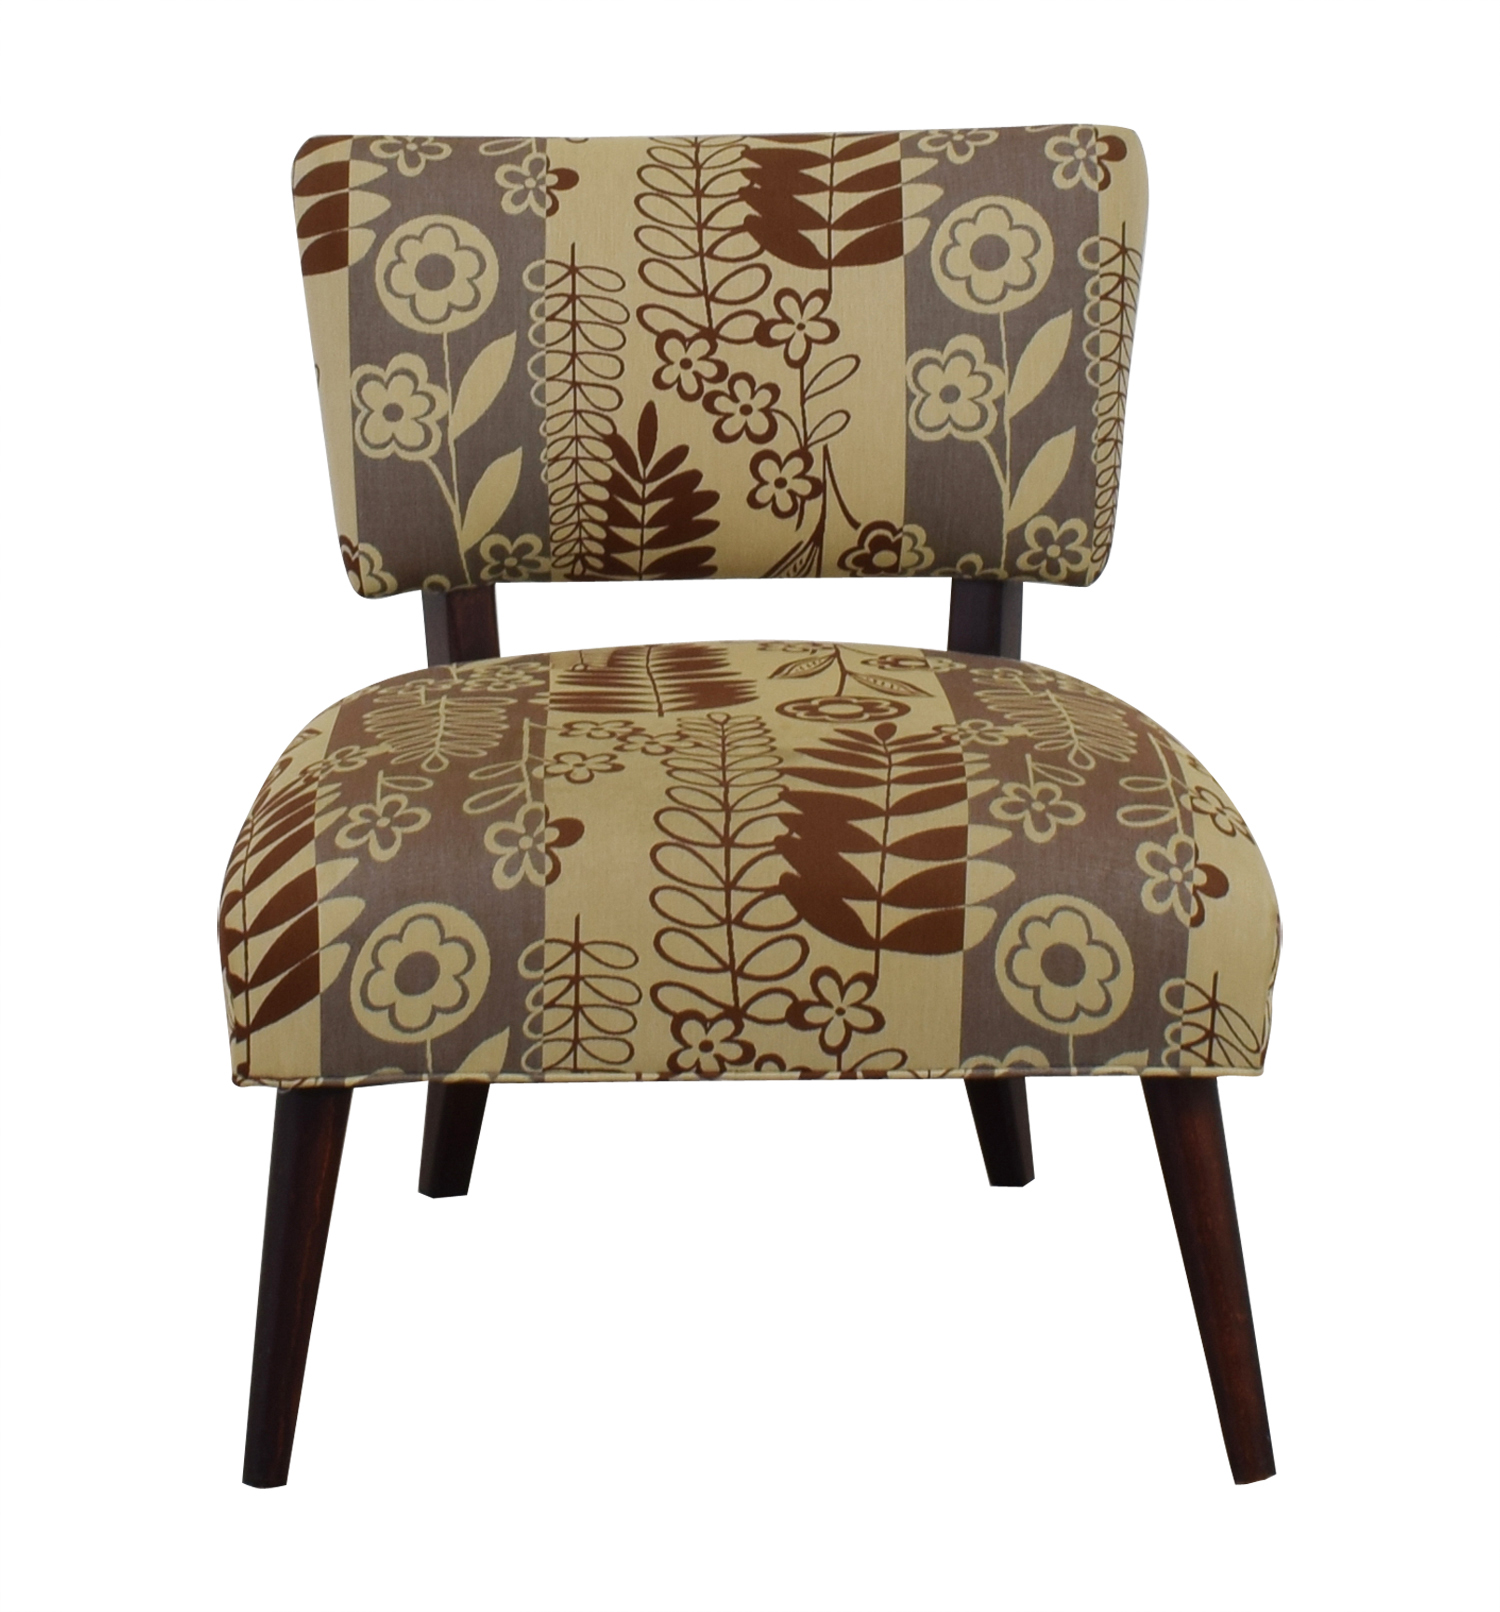 Beige Multi-Colored Floral Upholstered Chair price